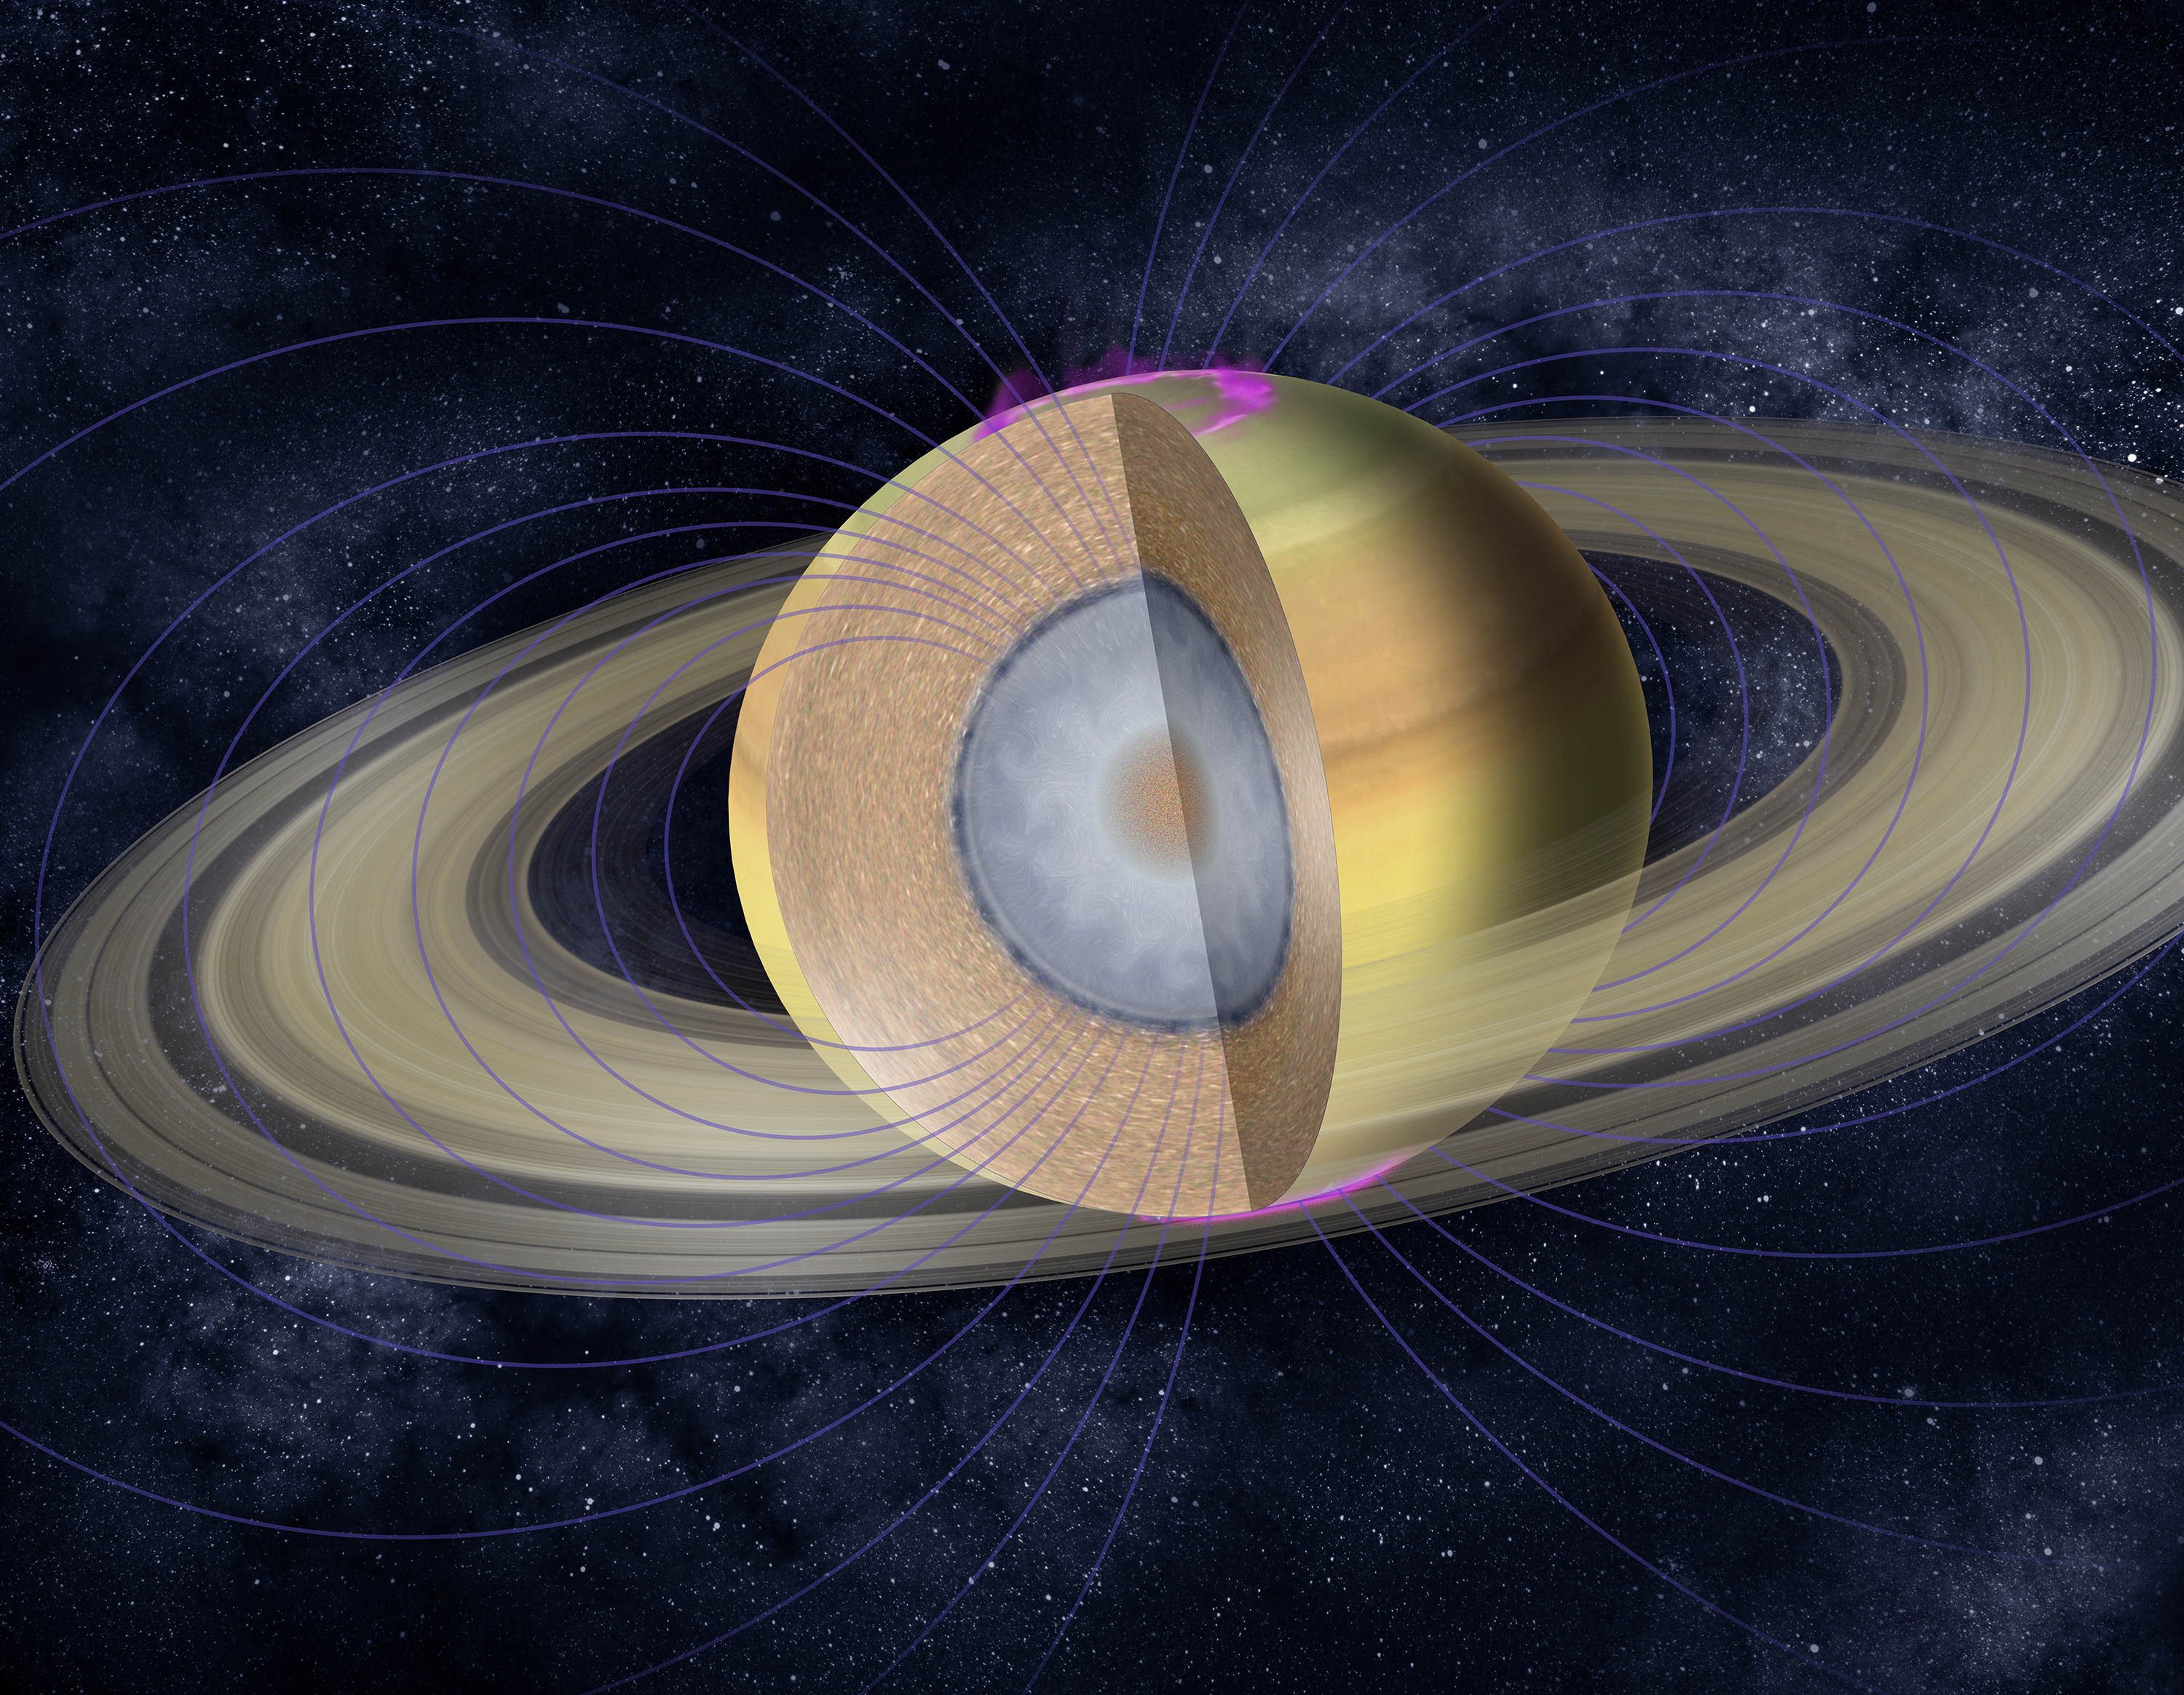 ESA Science & Technology: Internal structure of Saturn